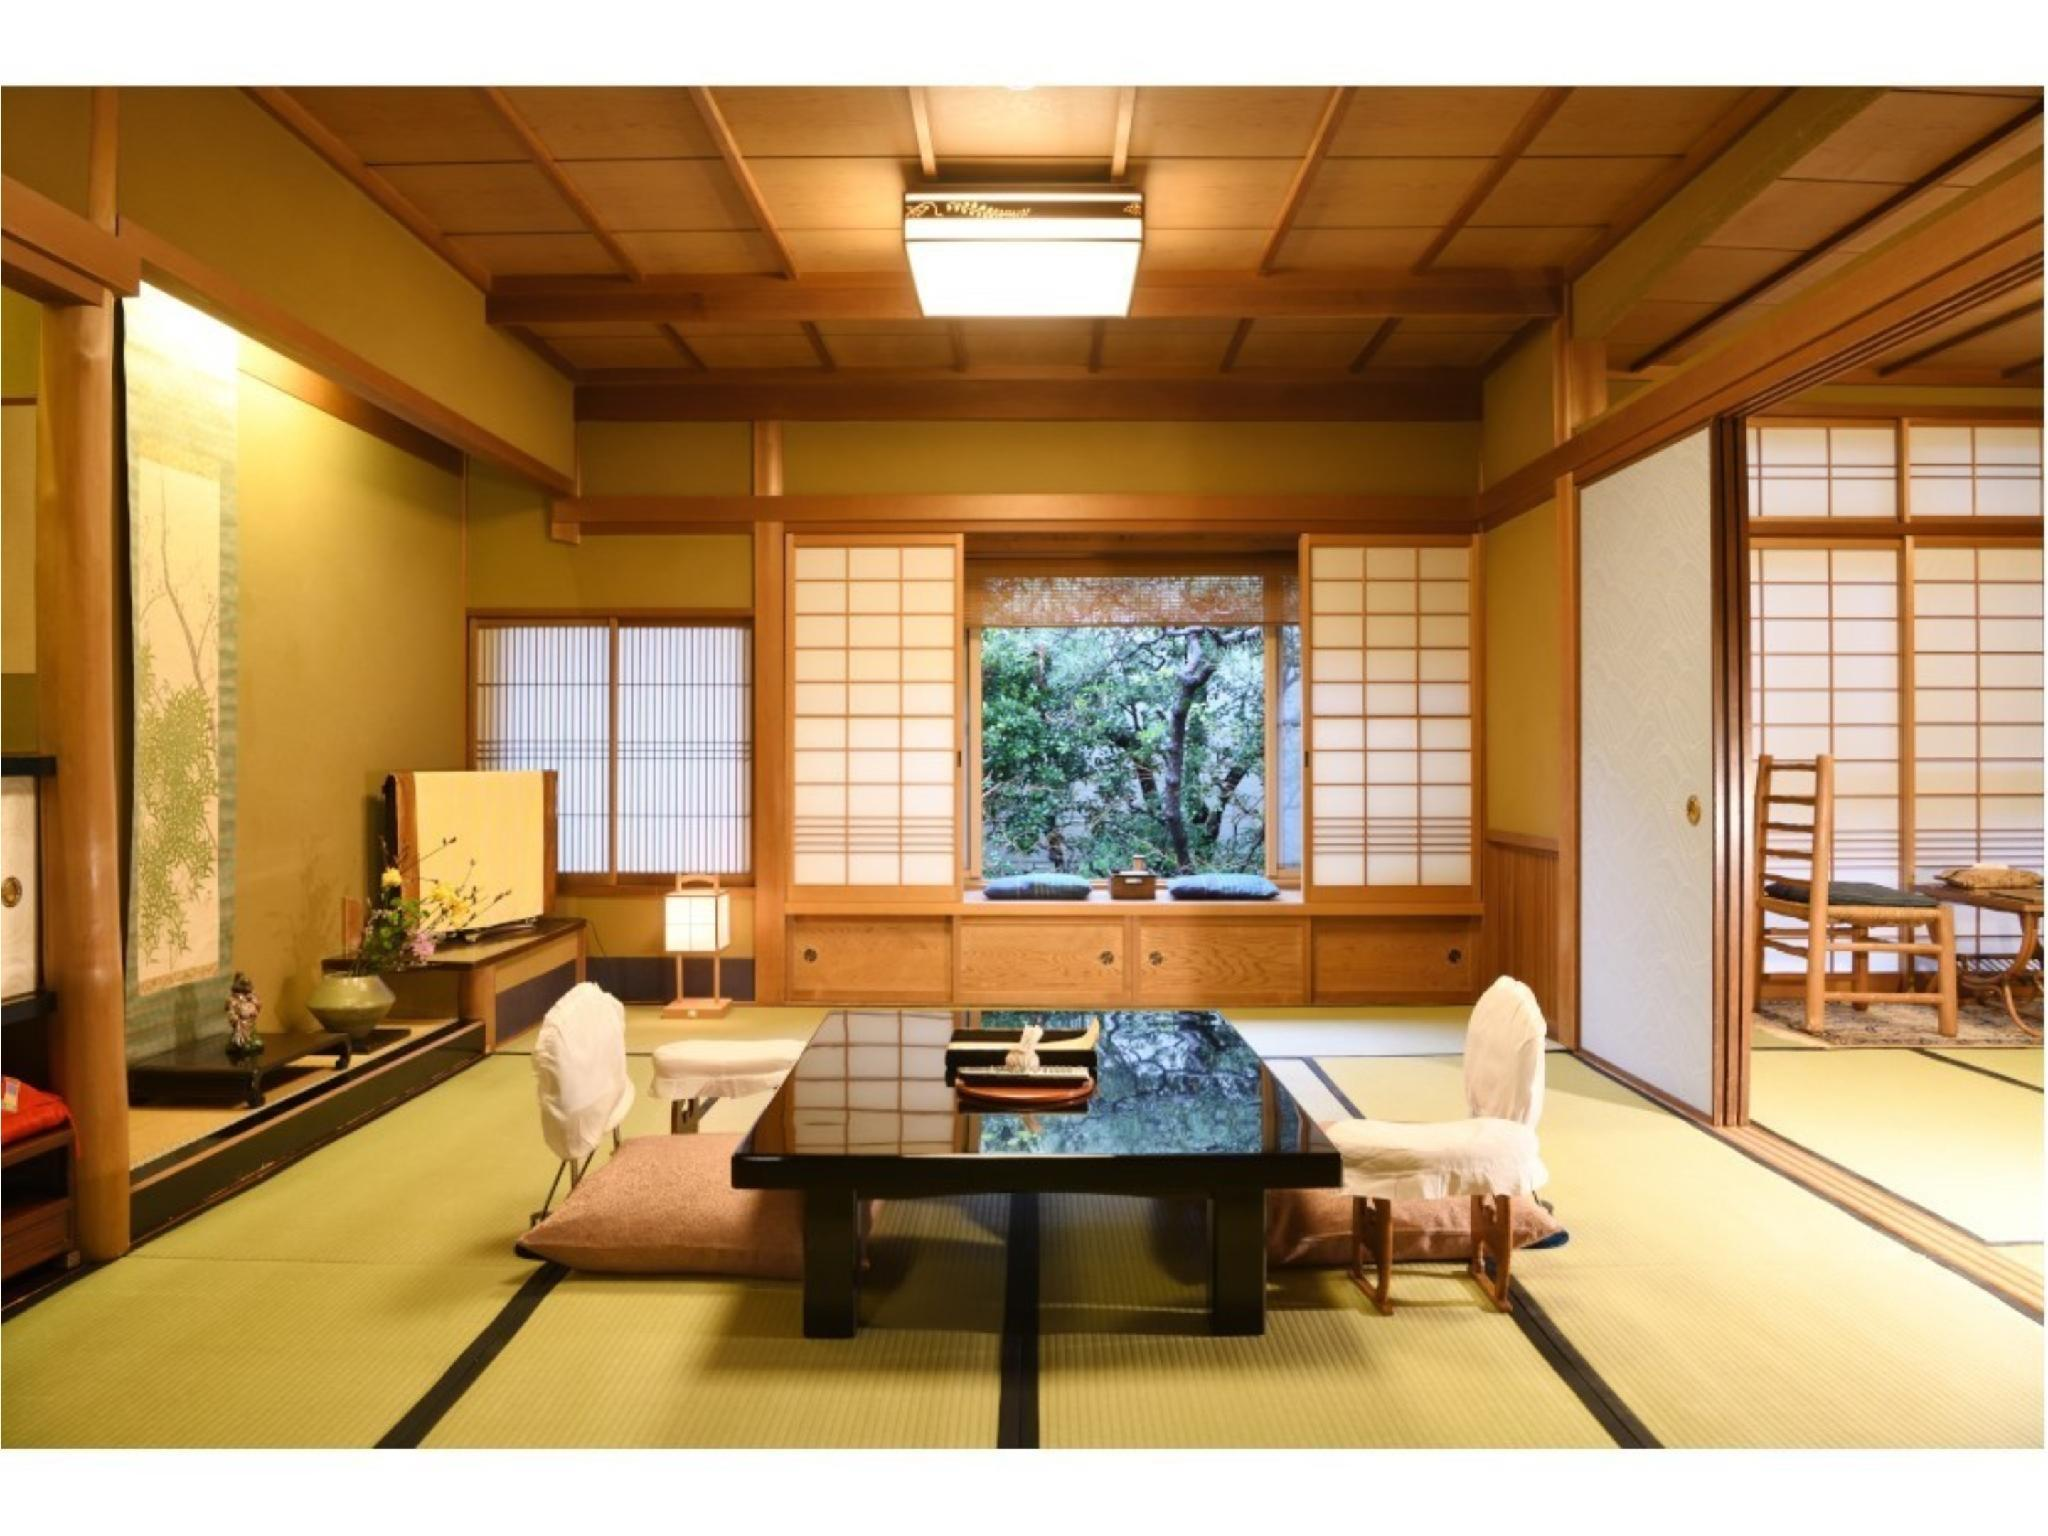 디럭스 다다미 객실(본관) (Deluxe Japanese-style Room (Main Building))